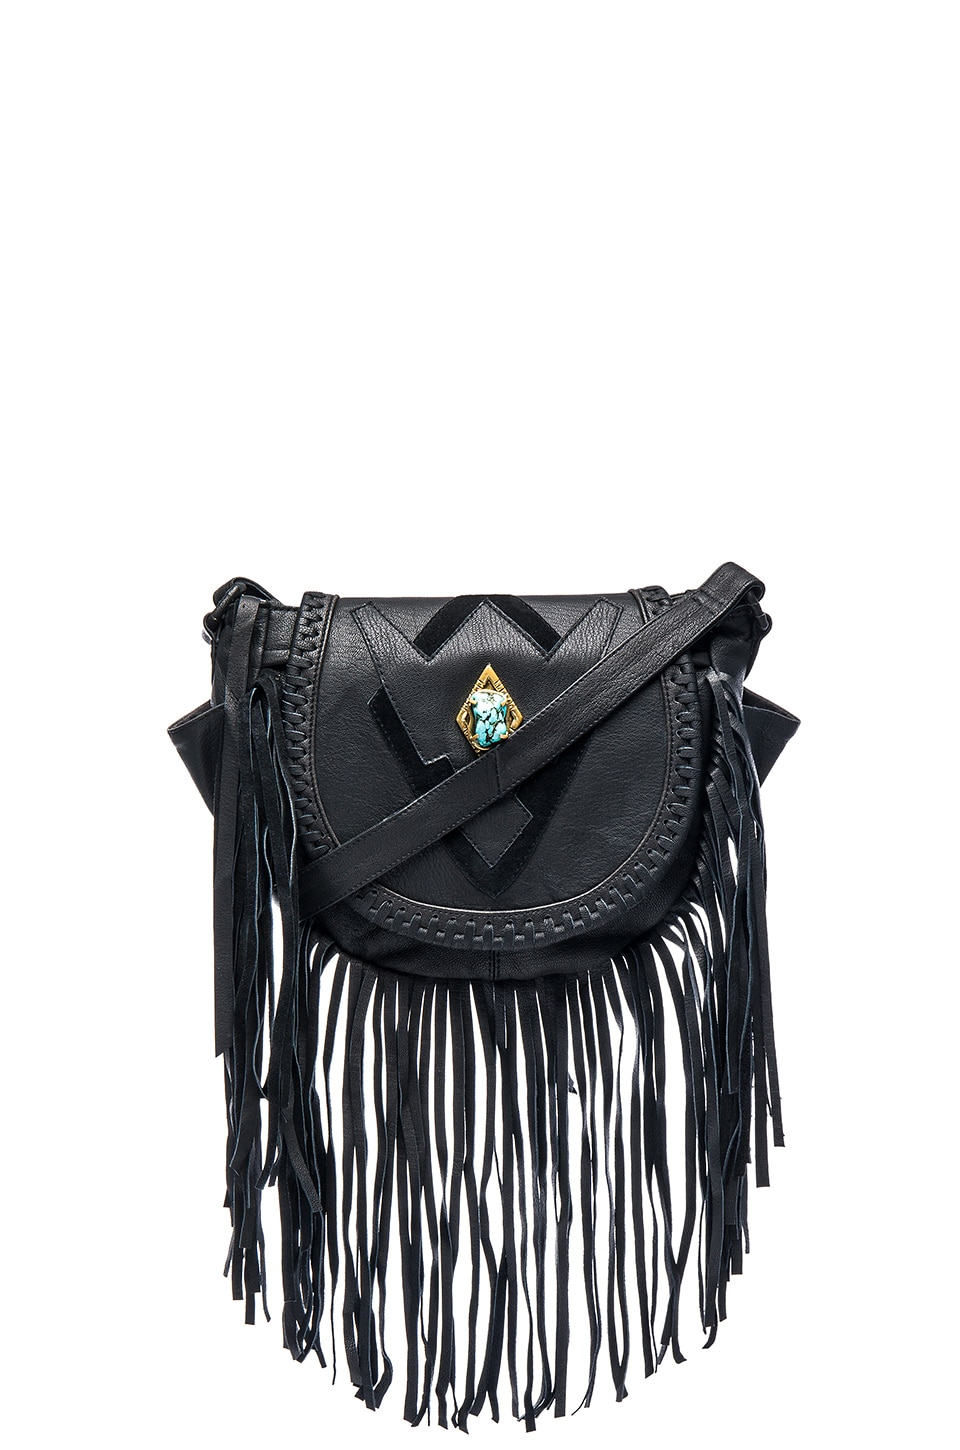 Cleobella Keats Crossbody Bag in Black